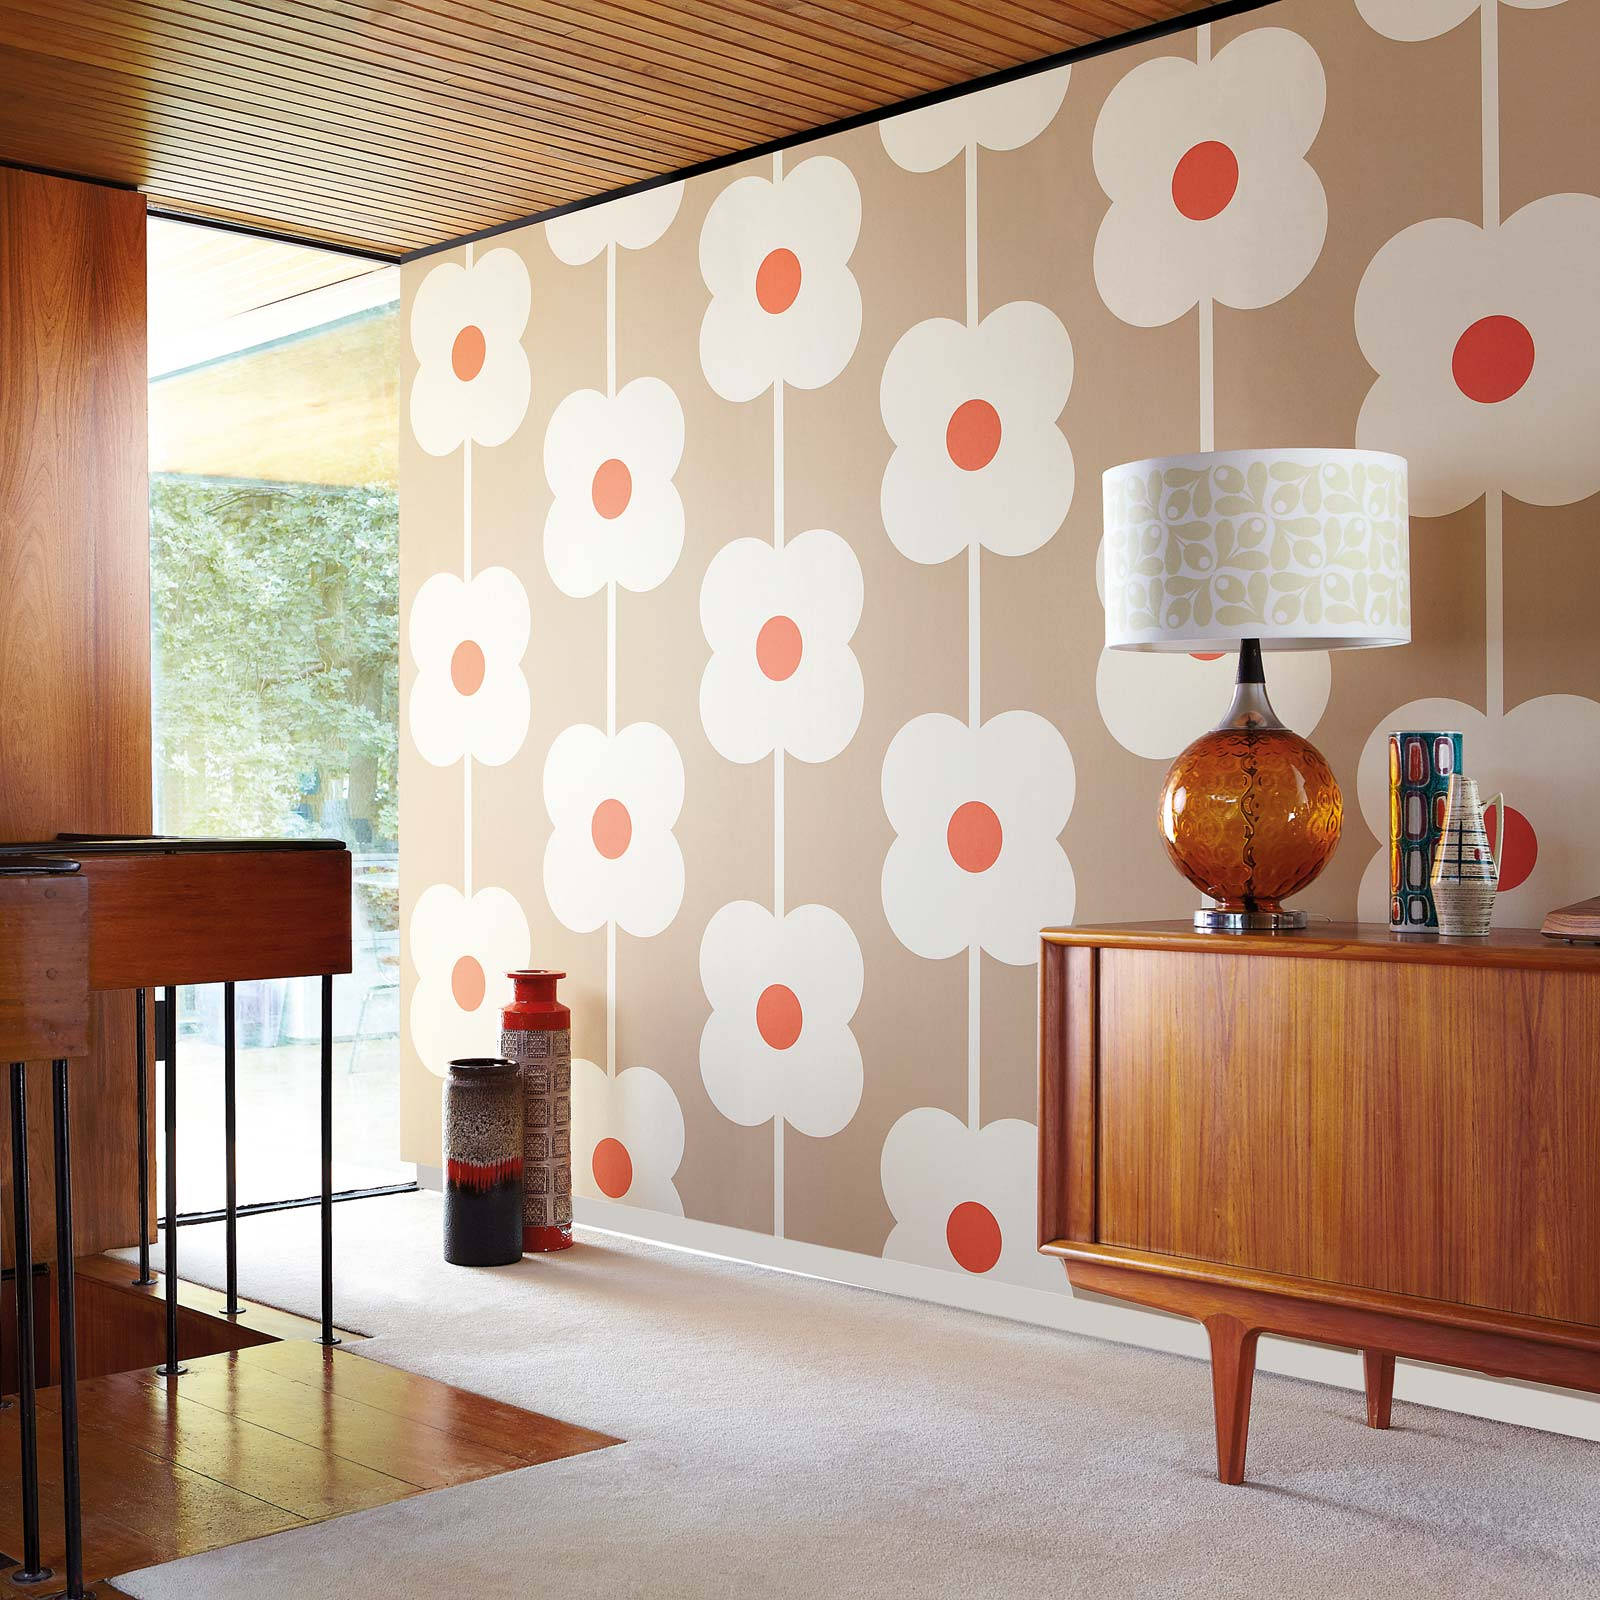 nouvelle collection de papiers peints orla kiely. Black Bedroom Furniture Sets. Home Design Ideas